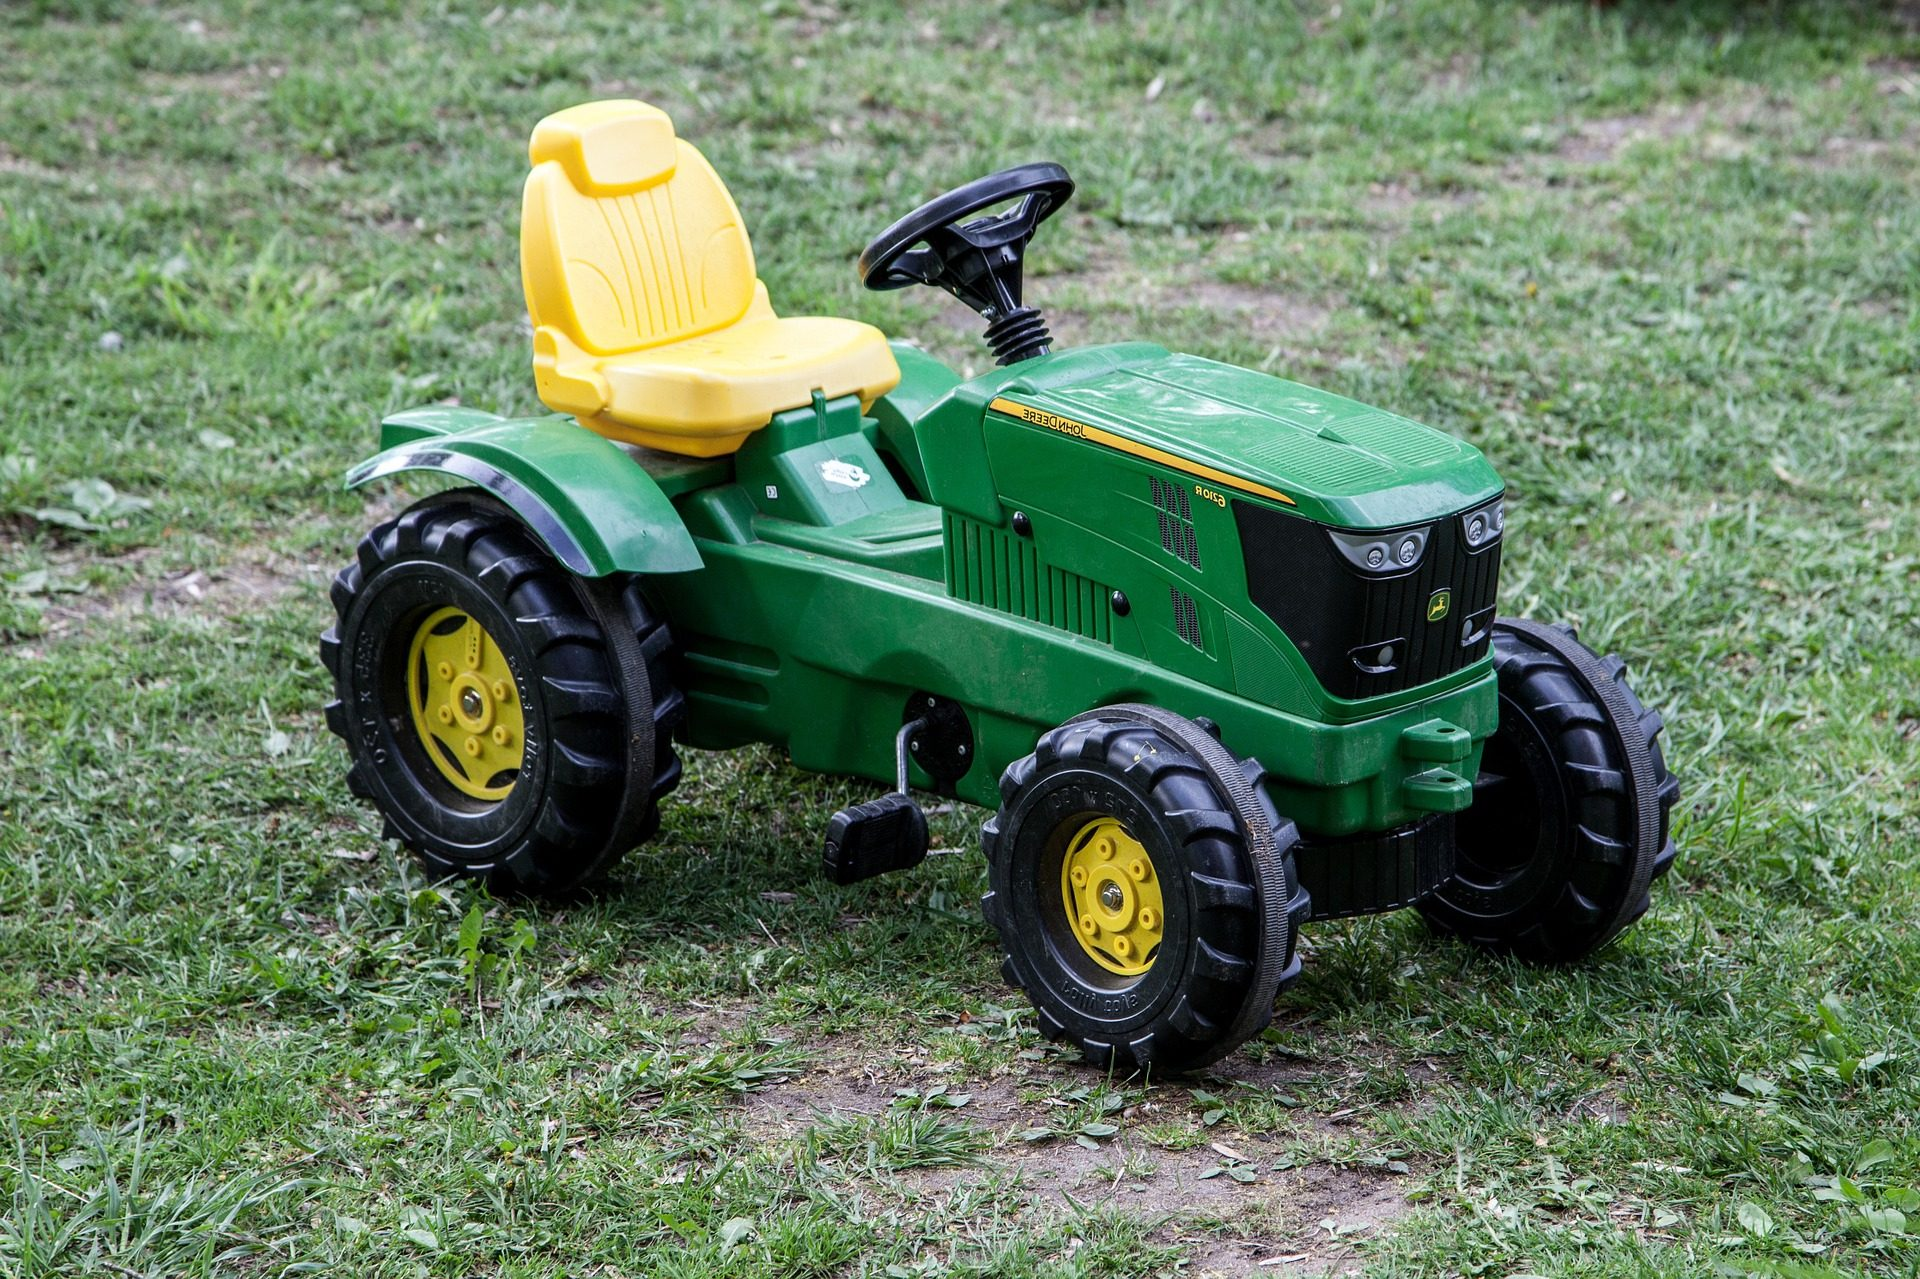 toy-tractor-1411172_1920